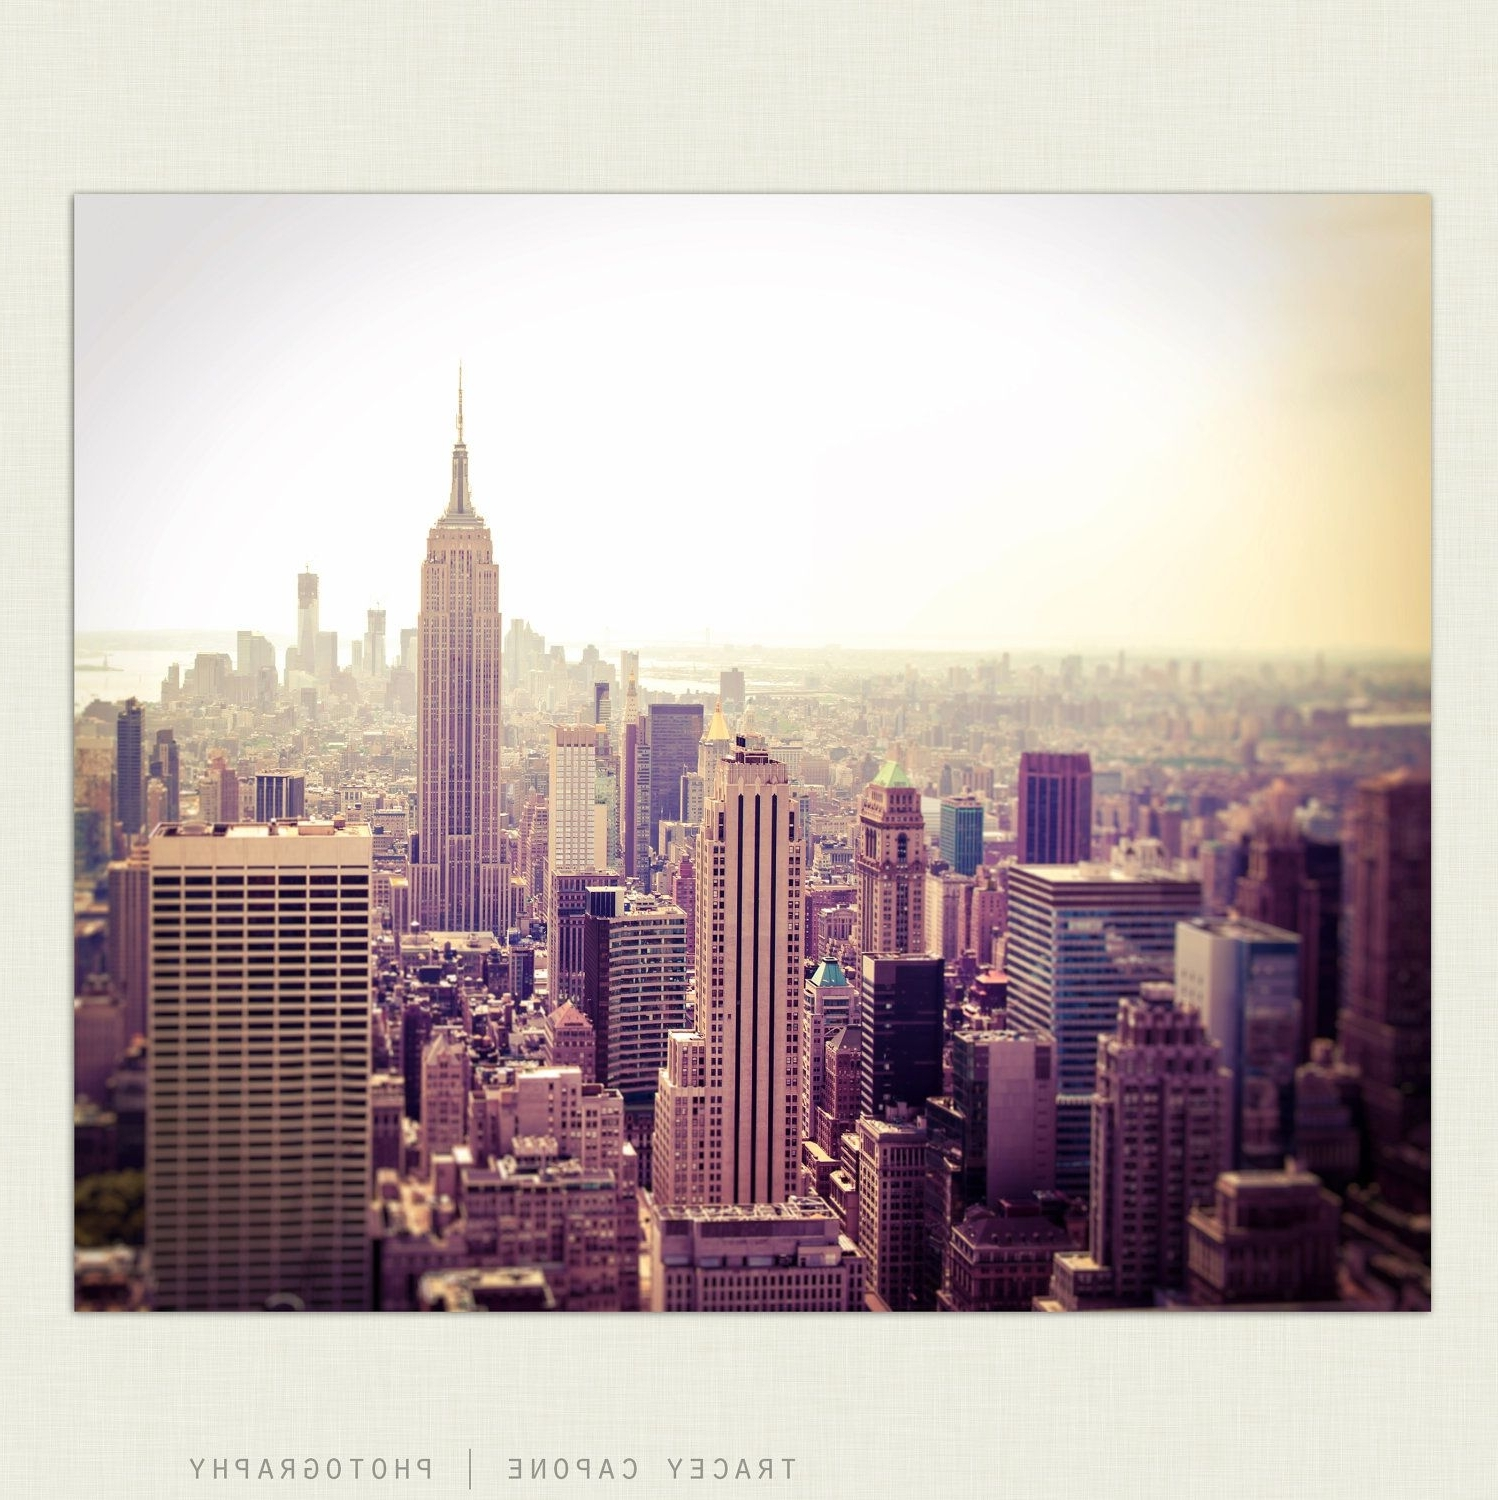 Well Known Nyc Wall Art For New York City Photography – Retro Inspired, Etsy Wall Art – The City (View 17 of 20)